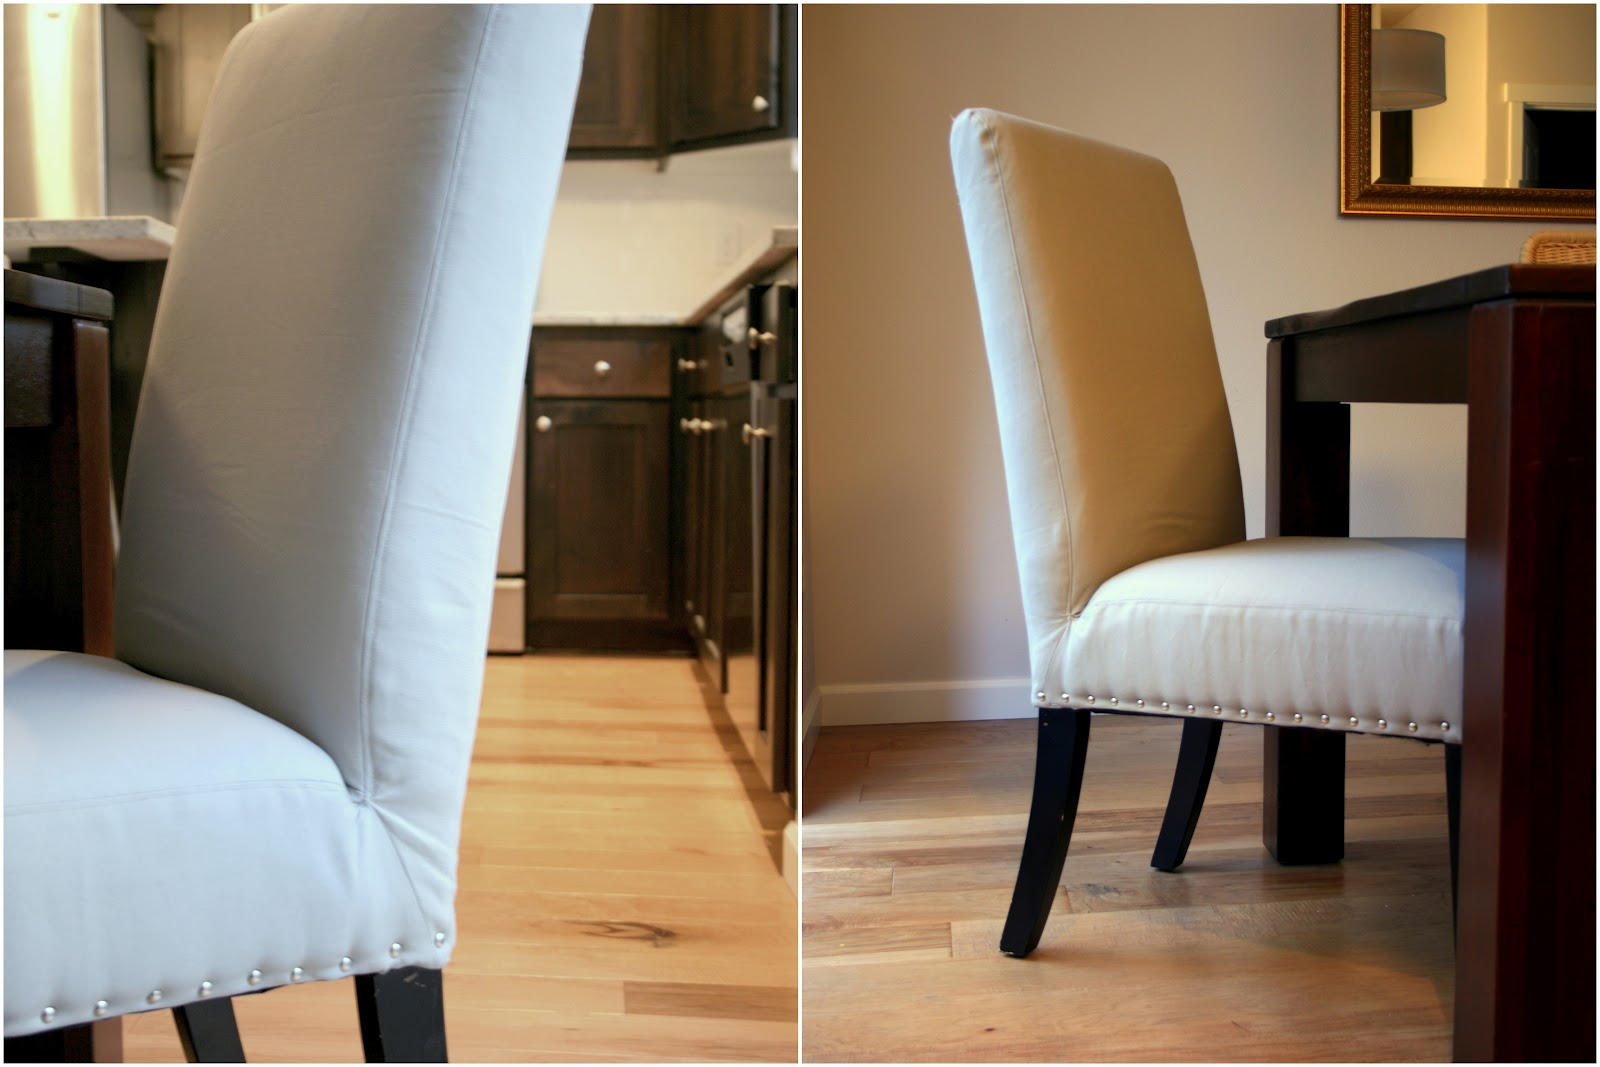 How To Make Dining Room Chair Covers So Proud Of My Little Upholstery Project Nailhead Parsons Chairs